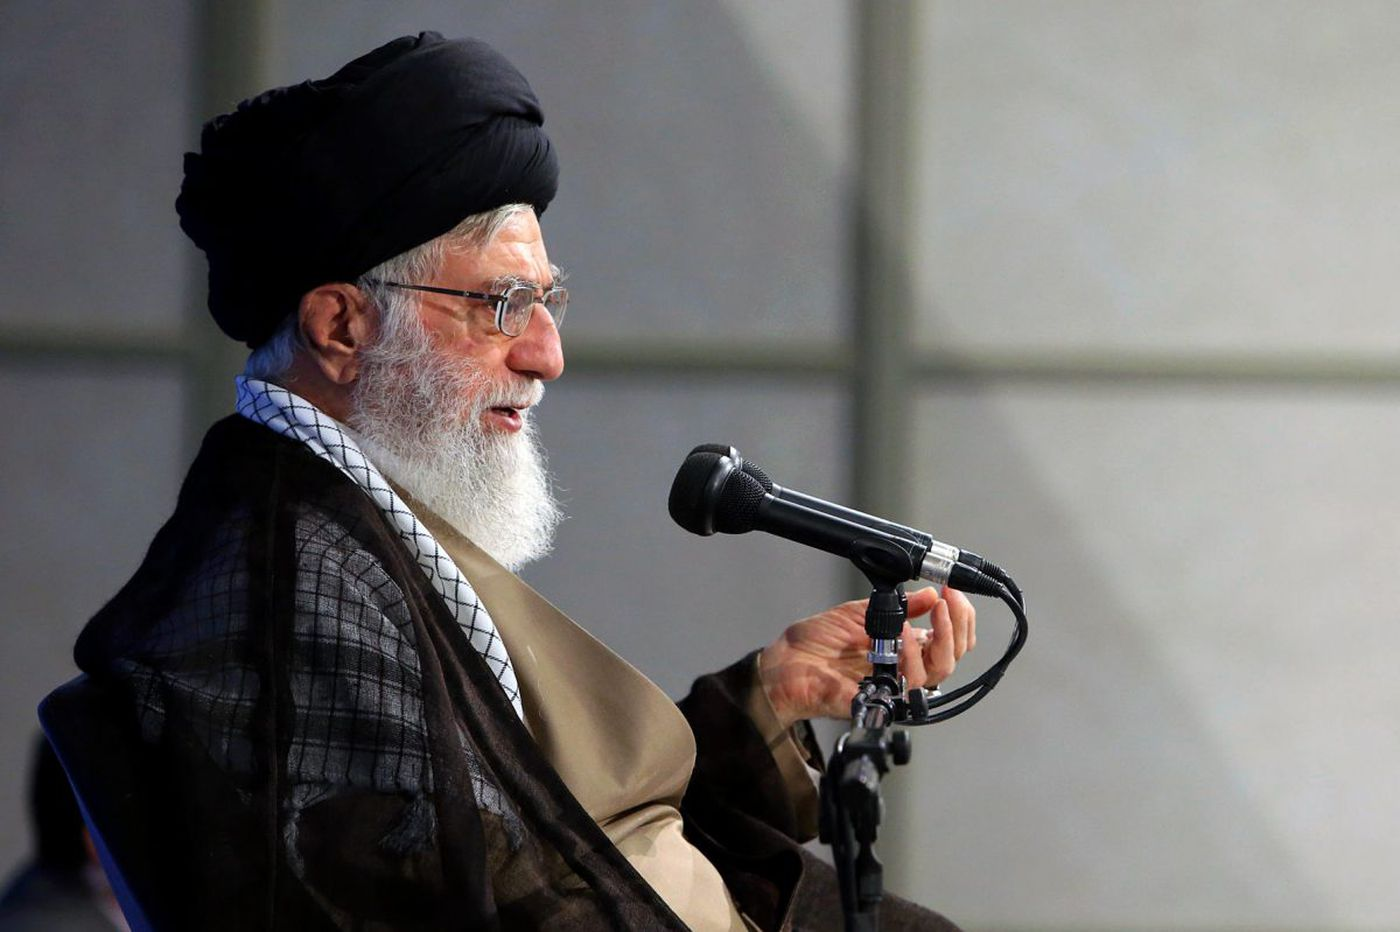 Undercutting the Iran deal makes it harder to counter Iran's misdeeds